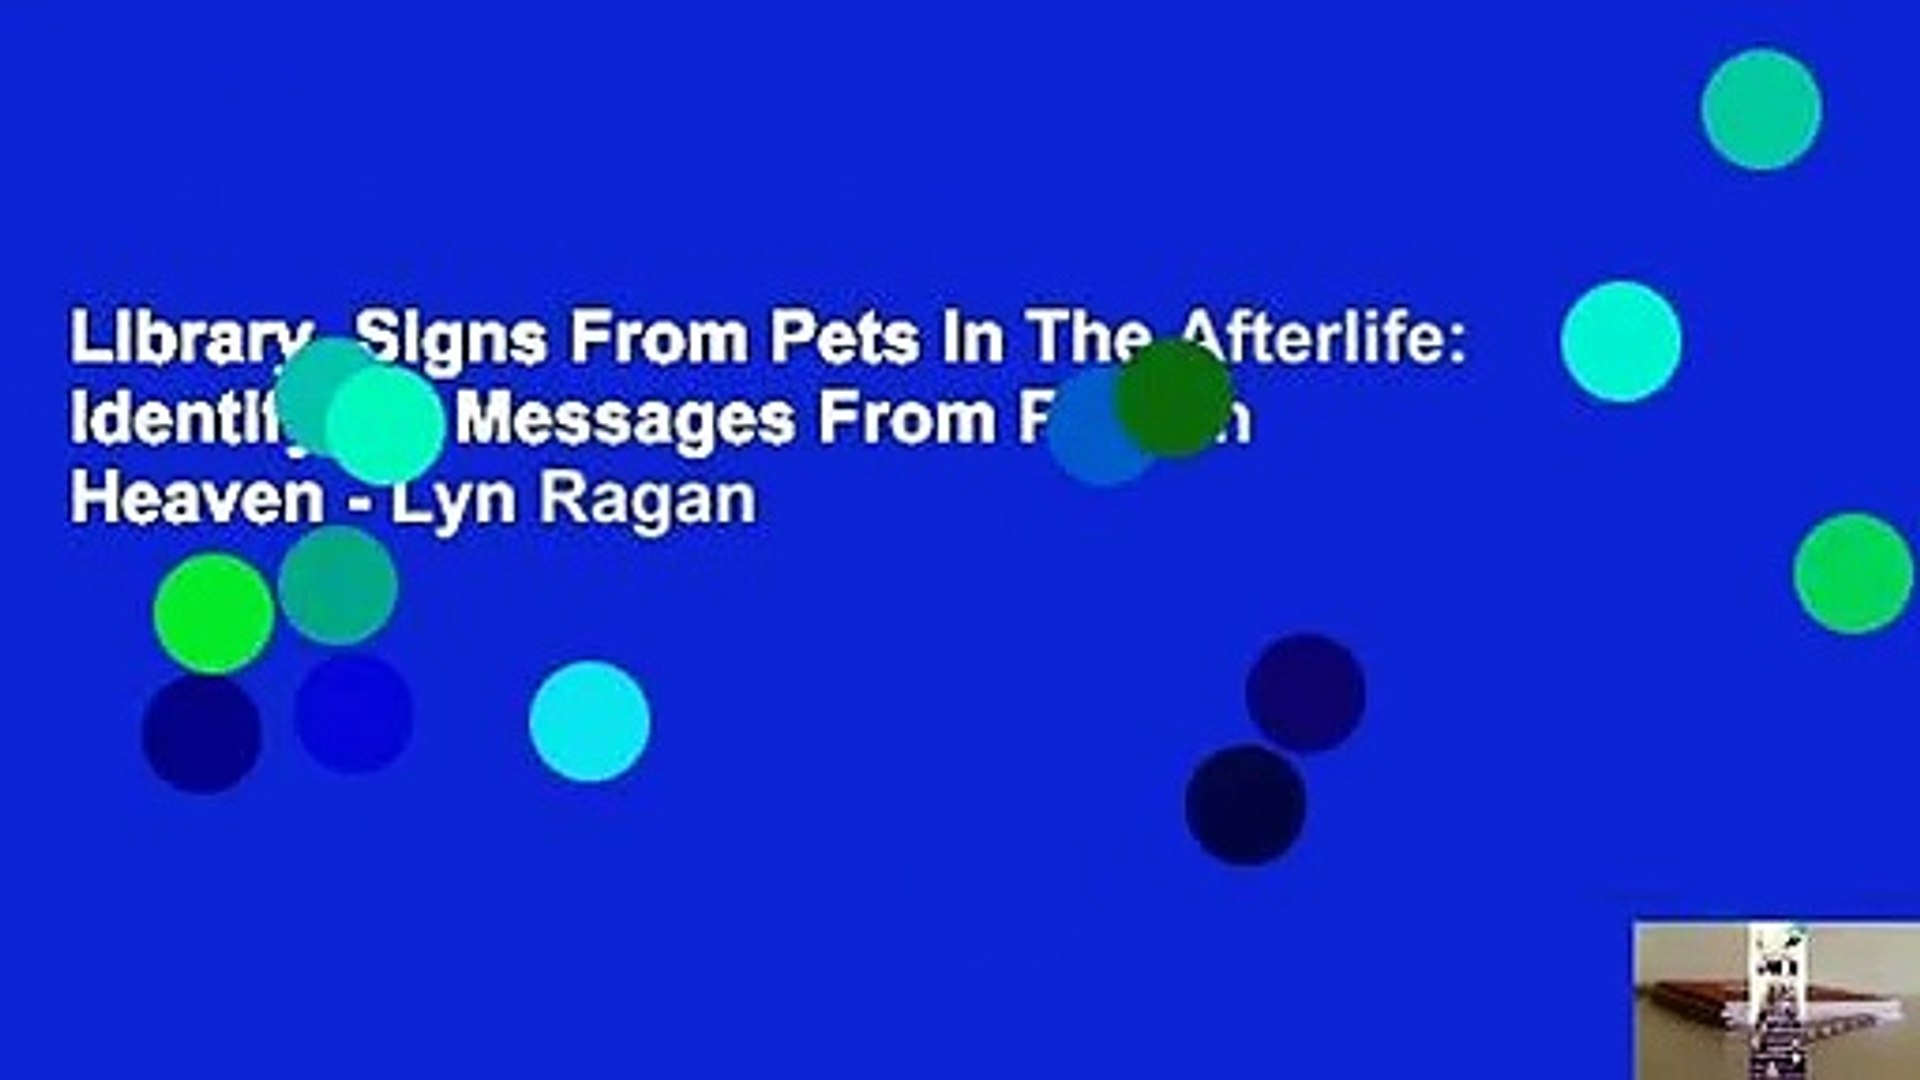 Library  Signs From Pets In The Afterlife: Identifying Messages From Pets In Heaven - Lyn Ragan